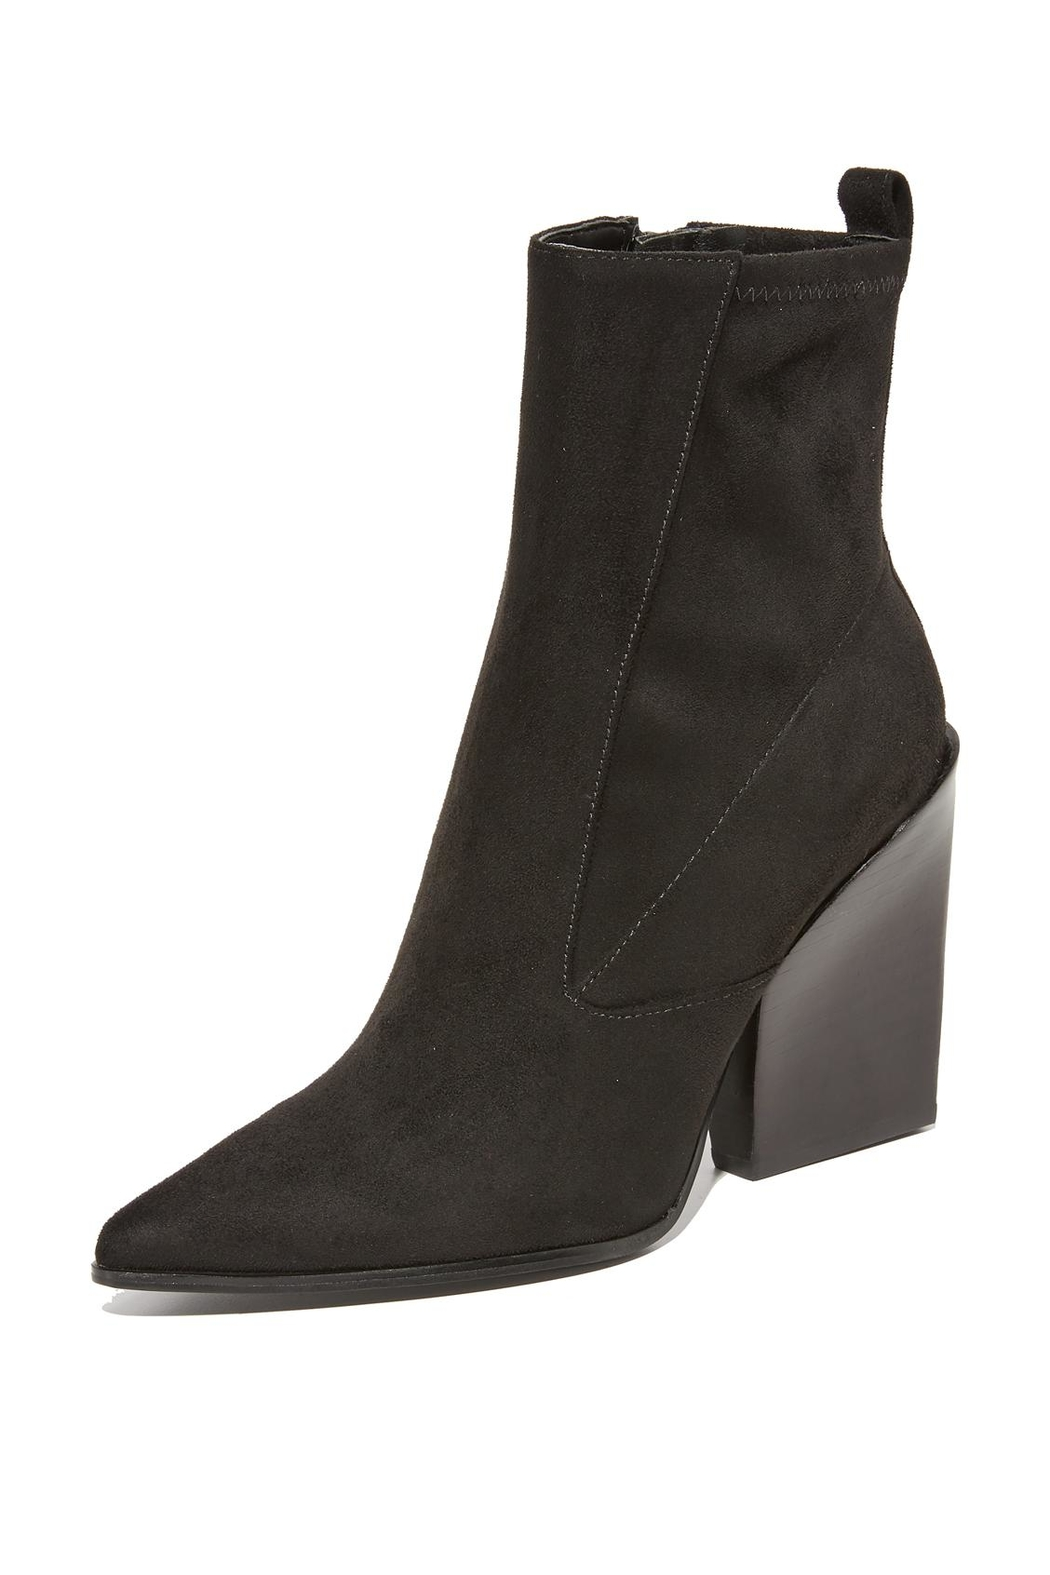 Kendall + Kylie Fallyn Pointed Toe Bootie - Back Cropped Image